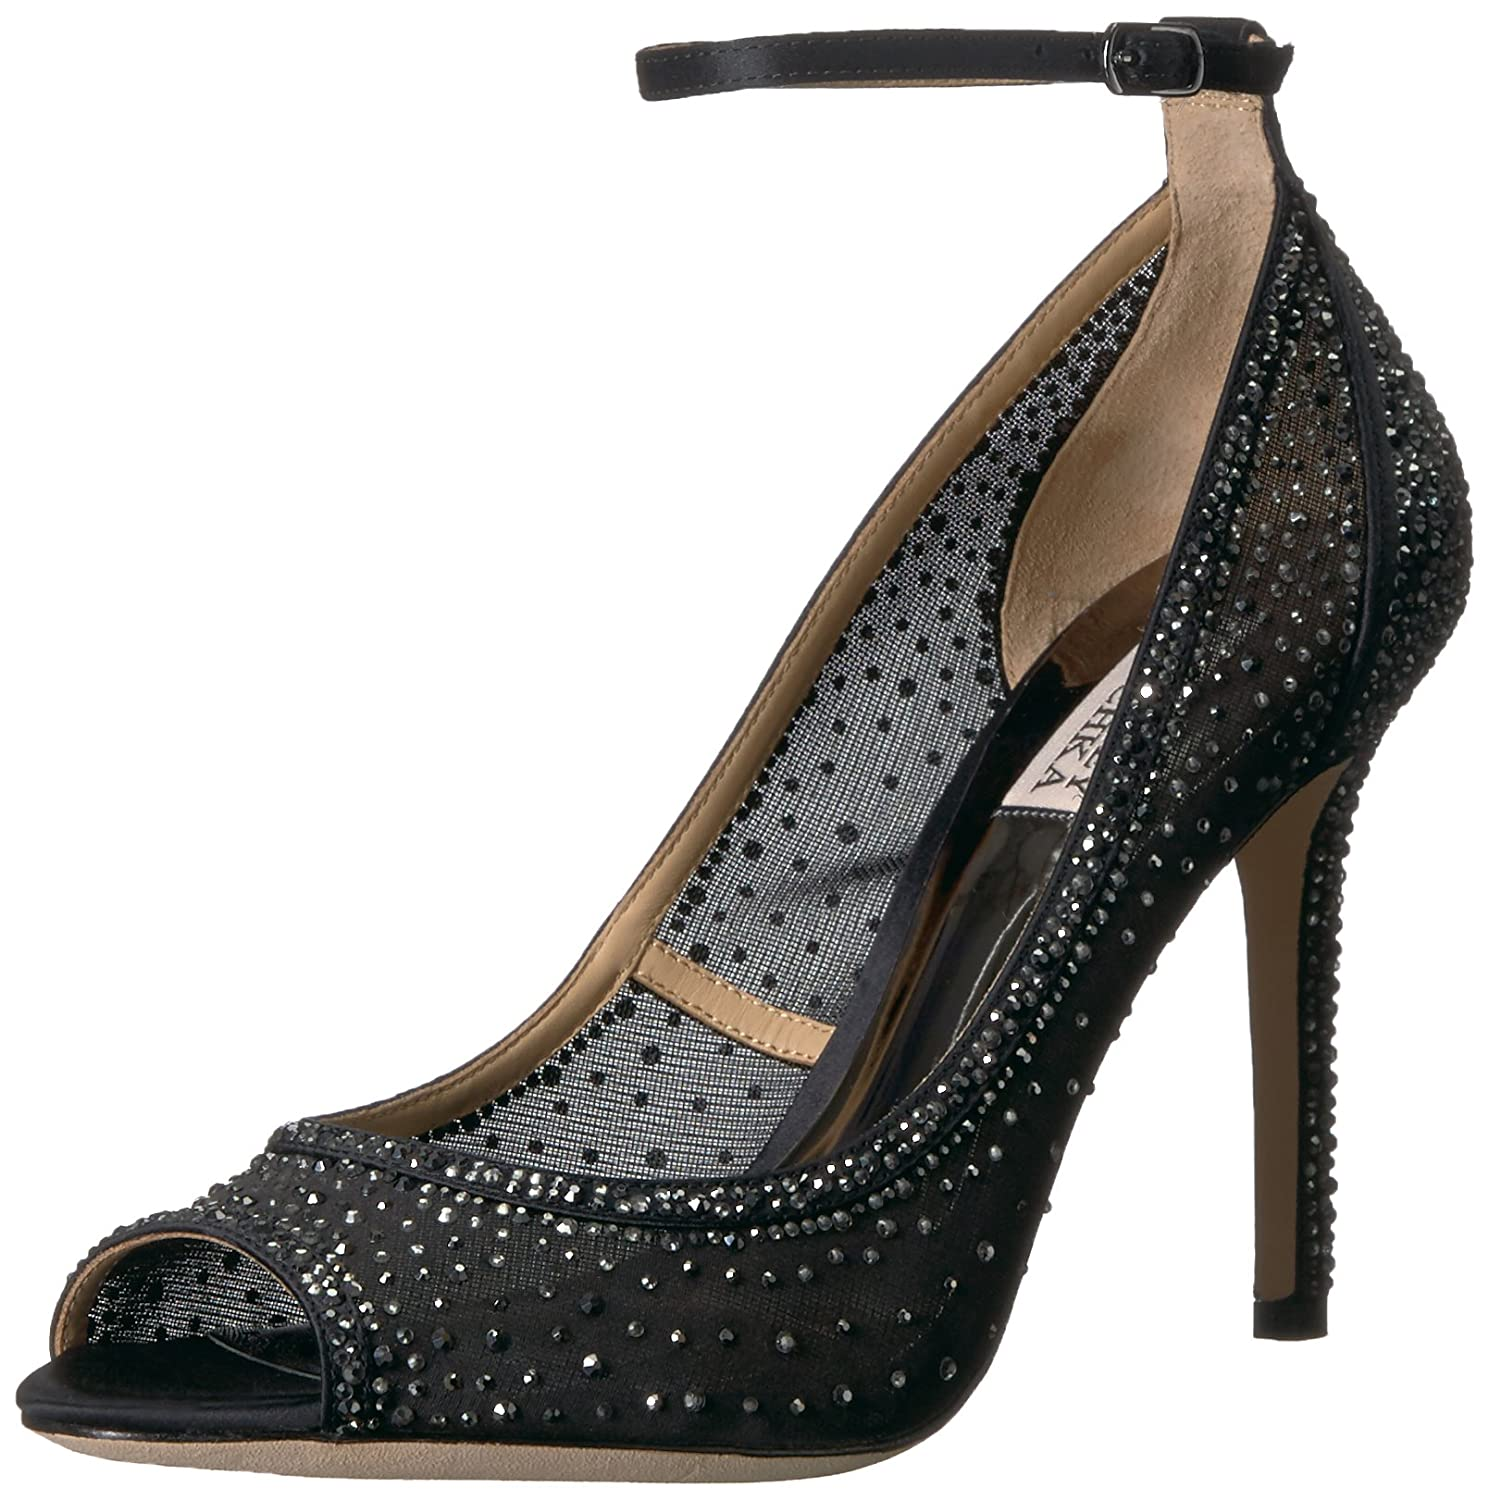 Badgley Mischka Women's Weylin Pump B073CWWPPC 7.5 B(M) US|Black